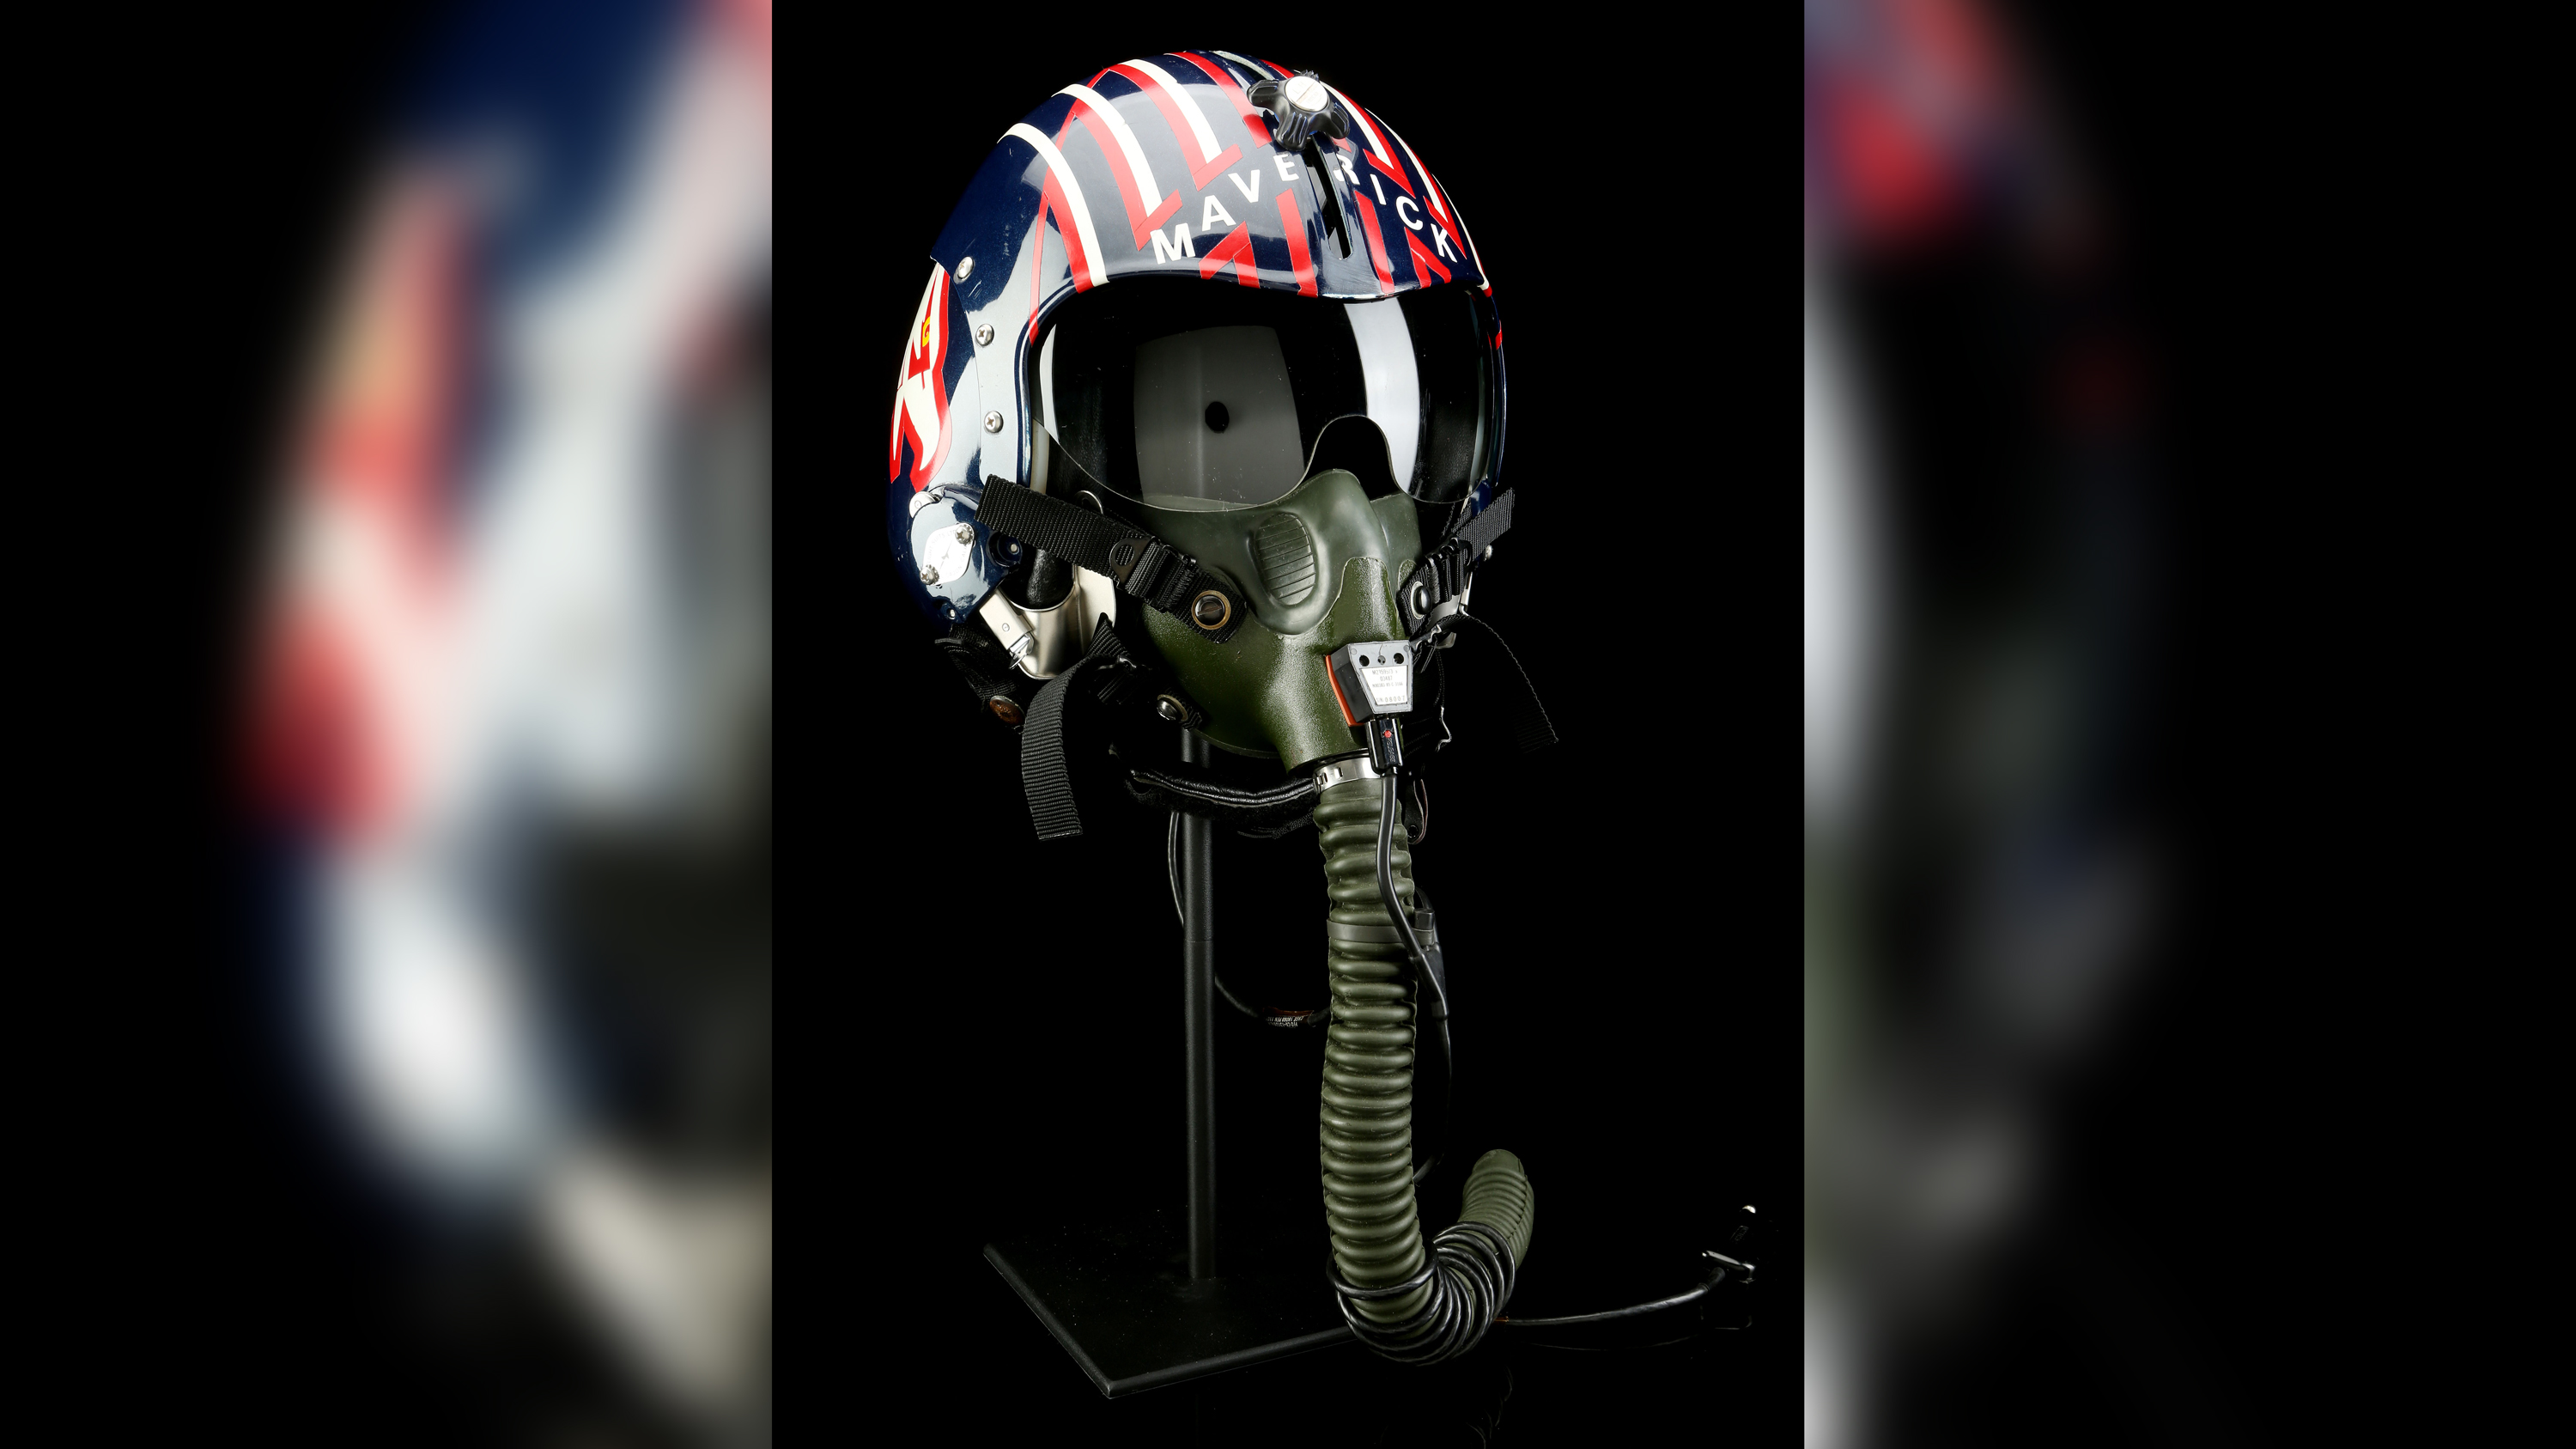 You can buy a Tom Cruise 'Top Gun' helmet, but it will set you back more than $65,000